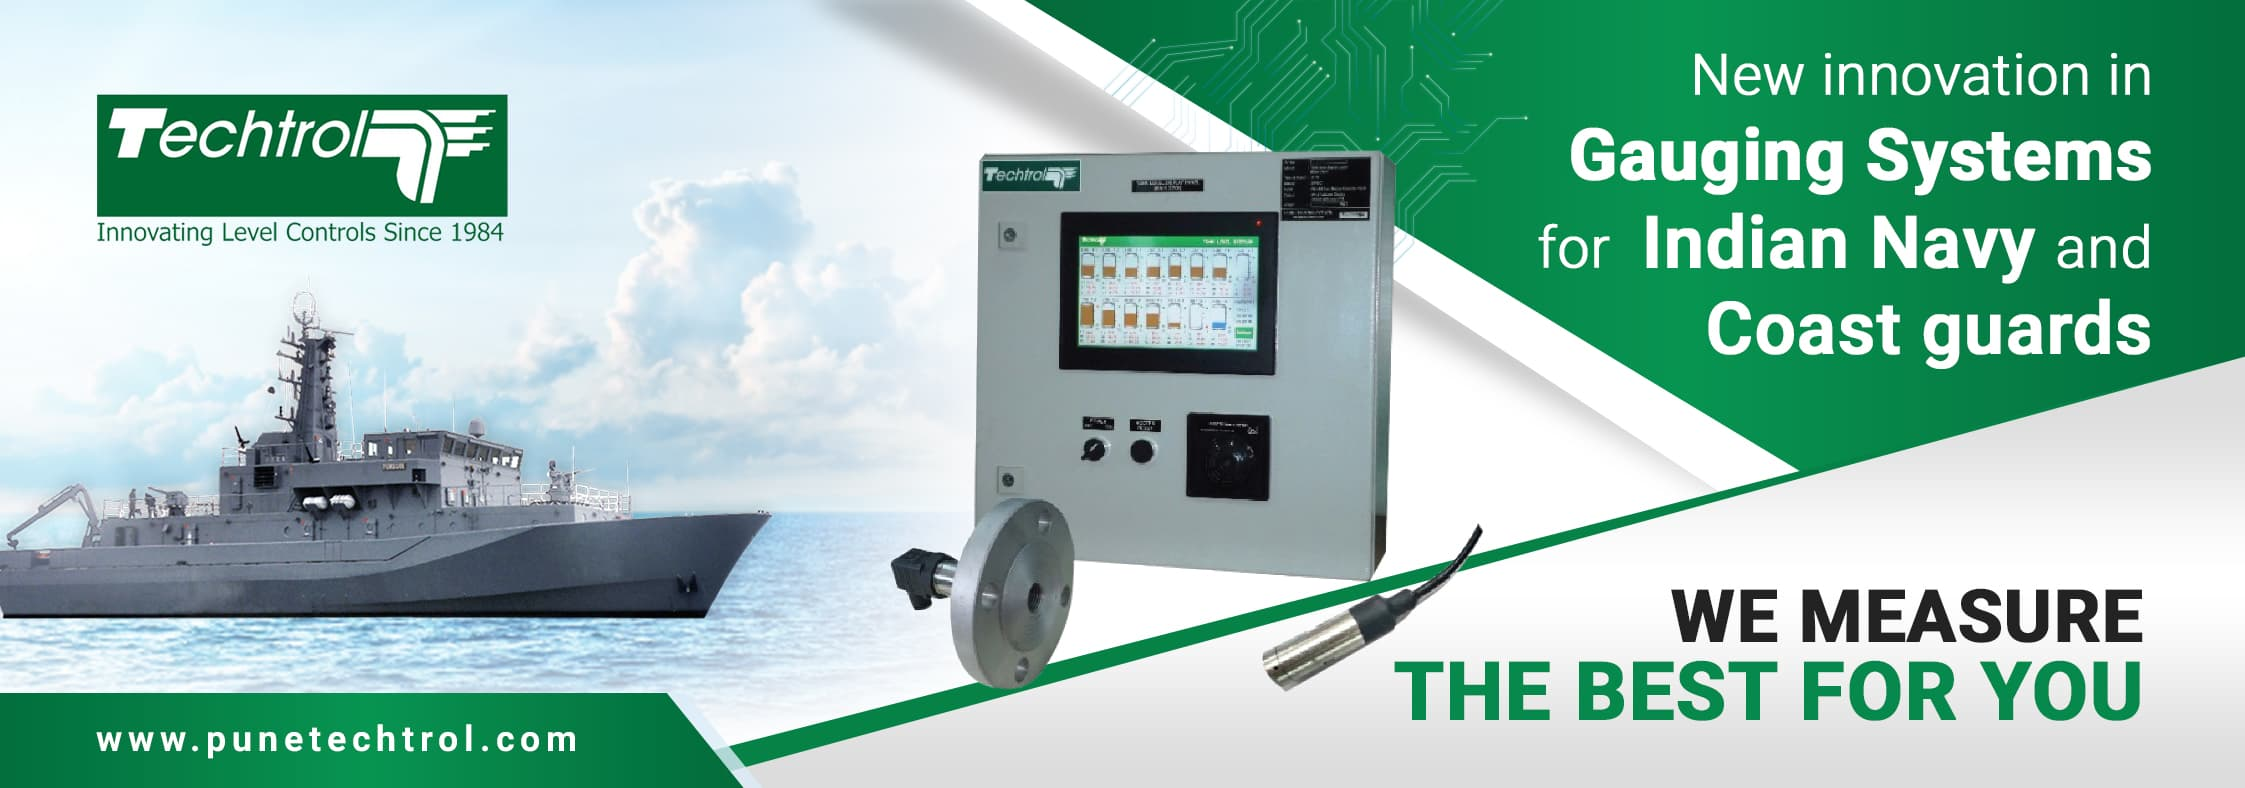 Techtrol Gauging System for Indian Navy and Coast Guards